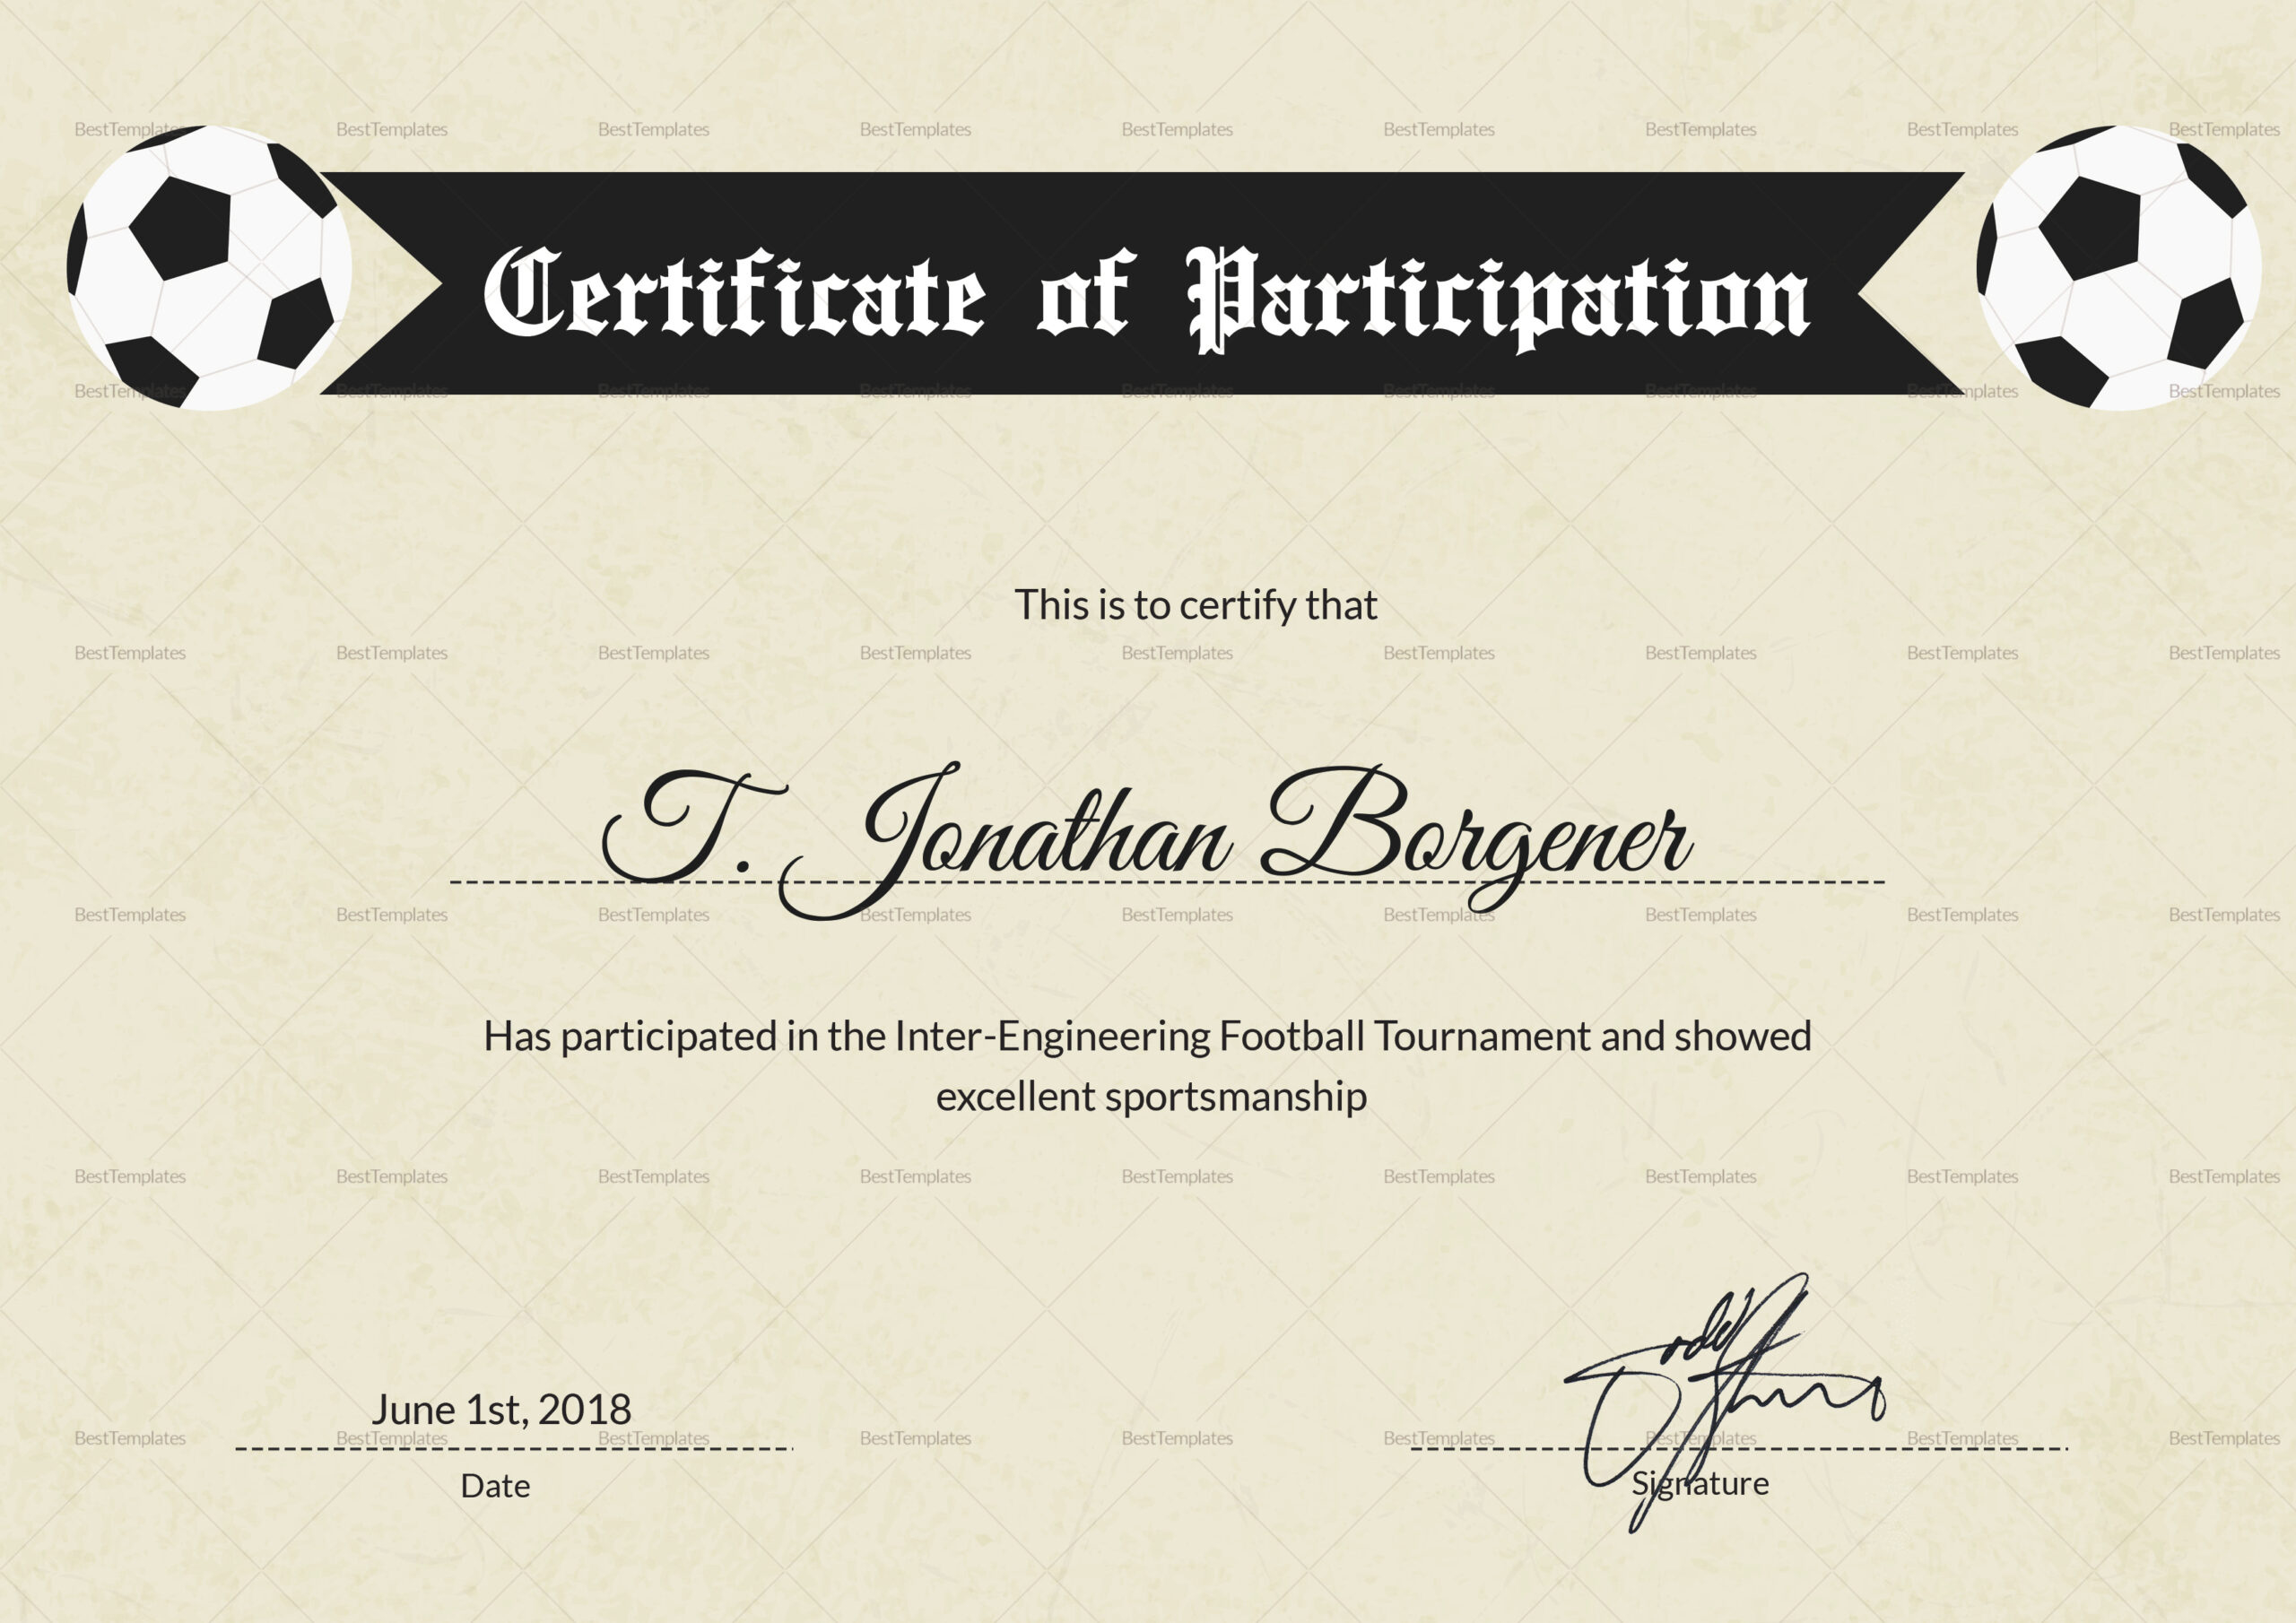 Football Certificate Of Participation  Calepmidnightpig within Certificate Of Participation Word Template